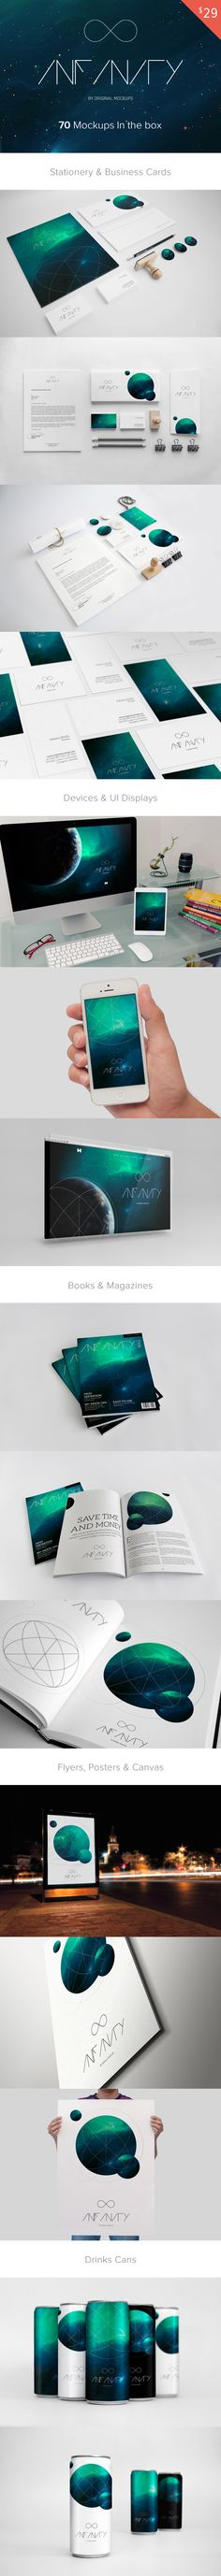 Infinity Mockups Bundle -business card, mock-ups, id mockups